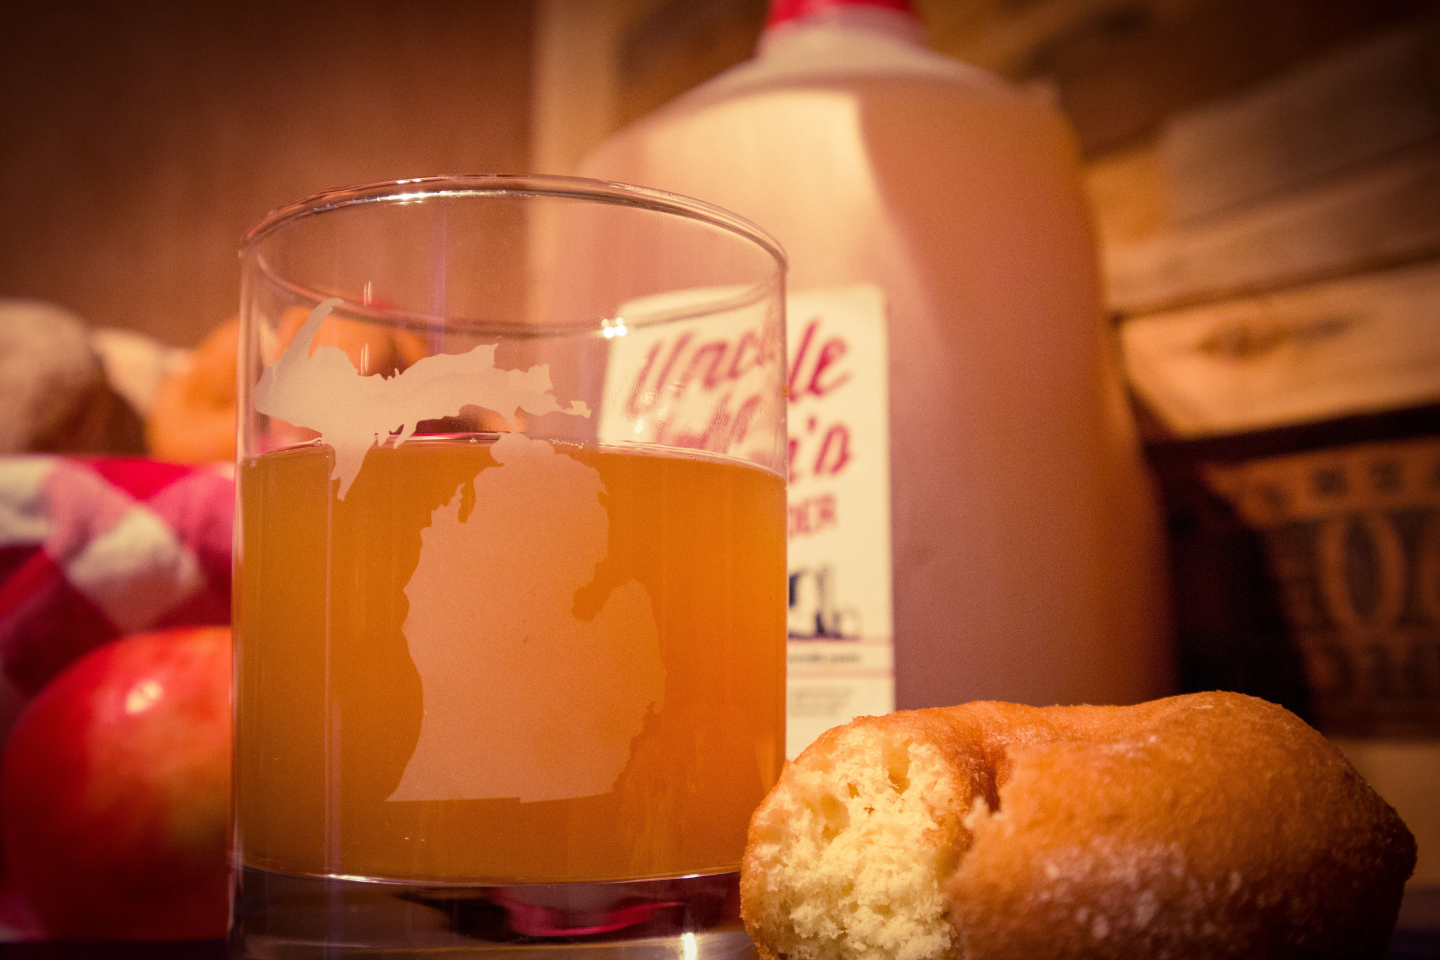 6. Once bottled, the cider is yours to enjoy. Don't forget the donuts!